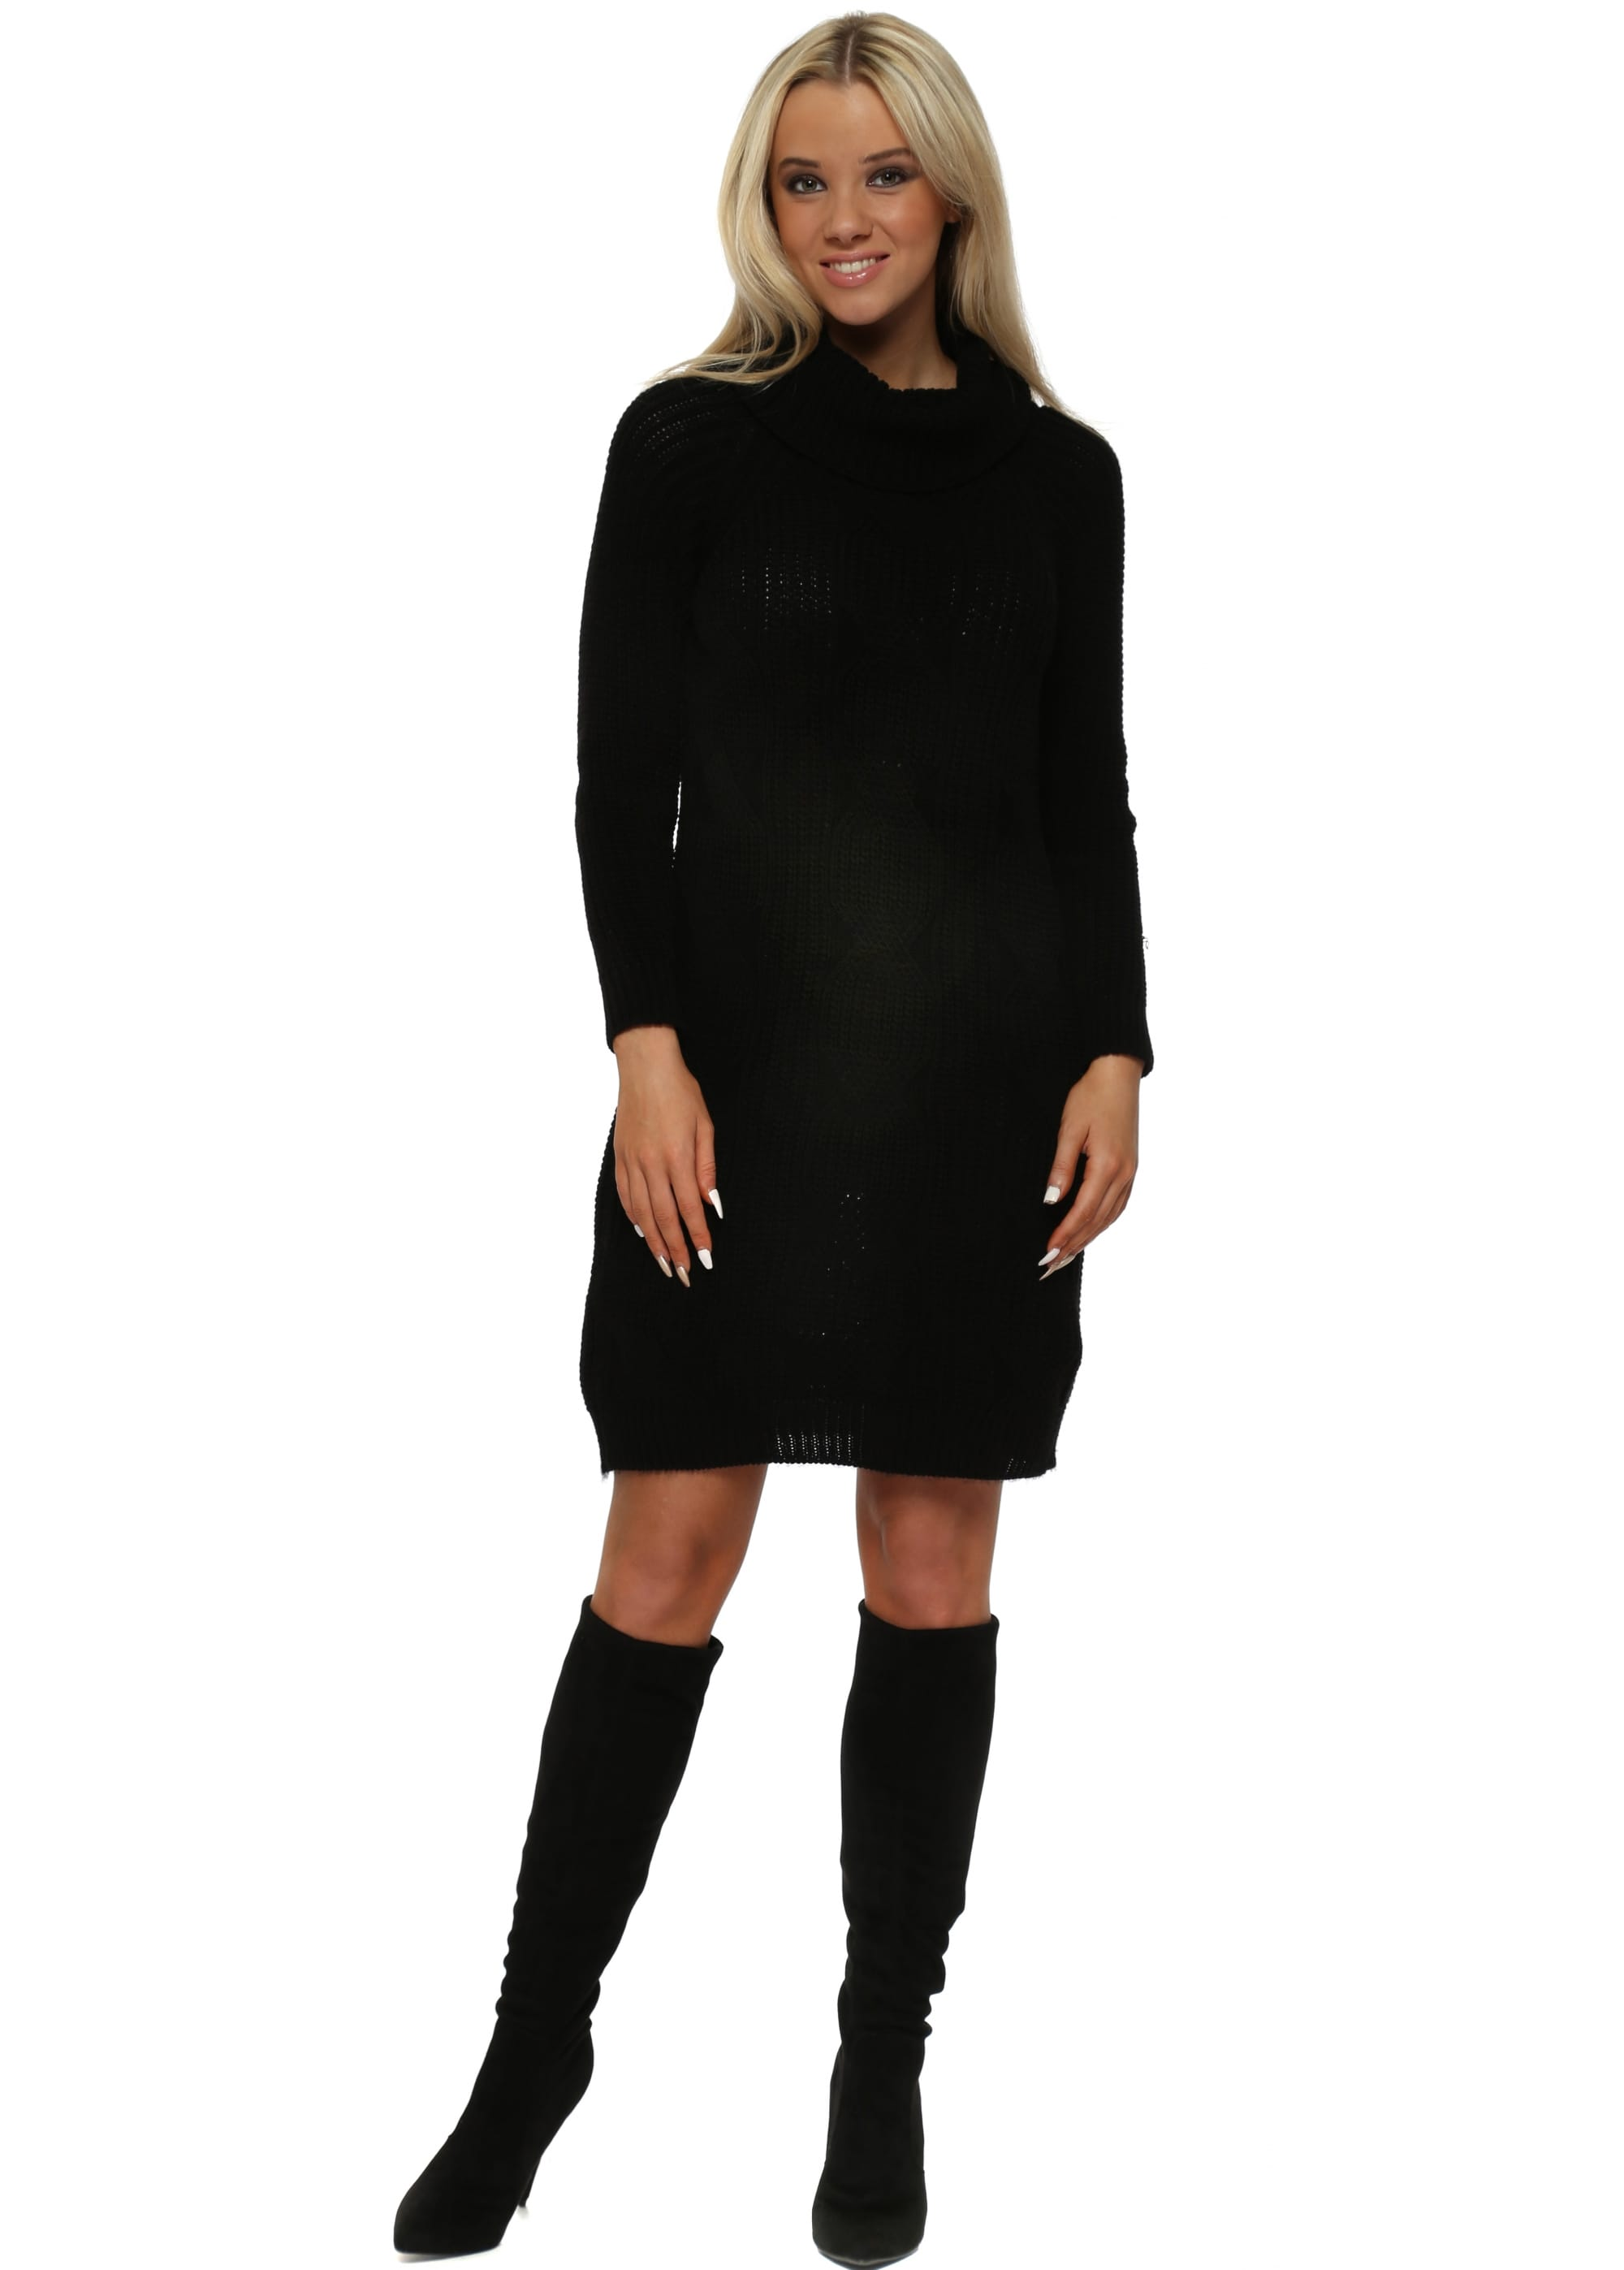 Black Jumper Dress | Www.pixshark.com - Images Galleries ...